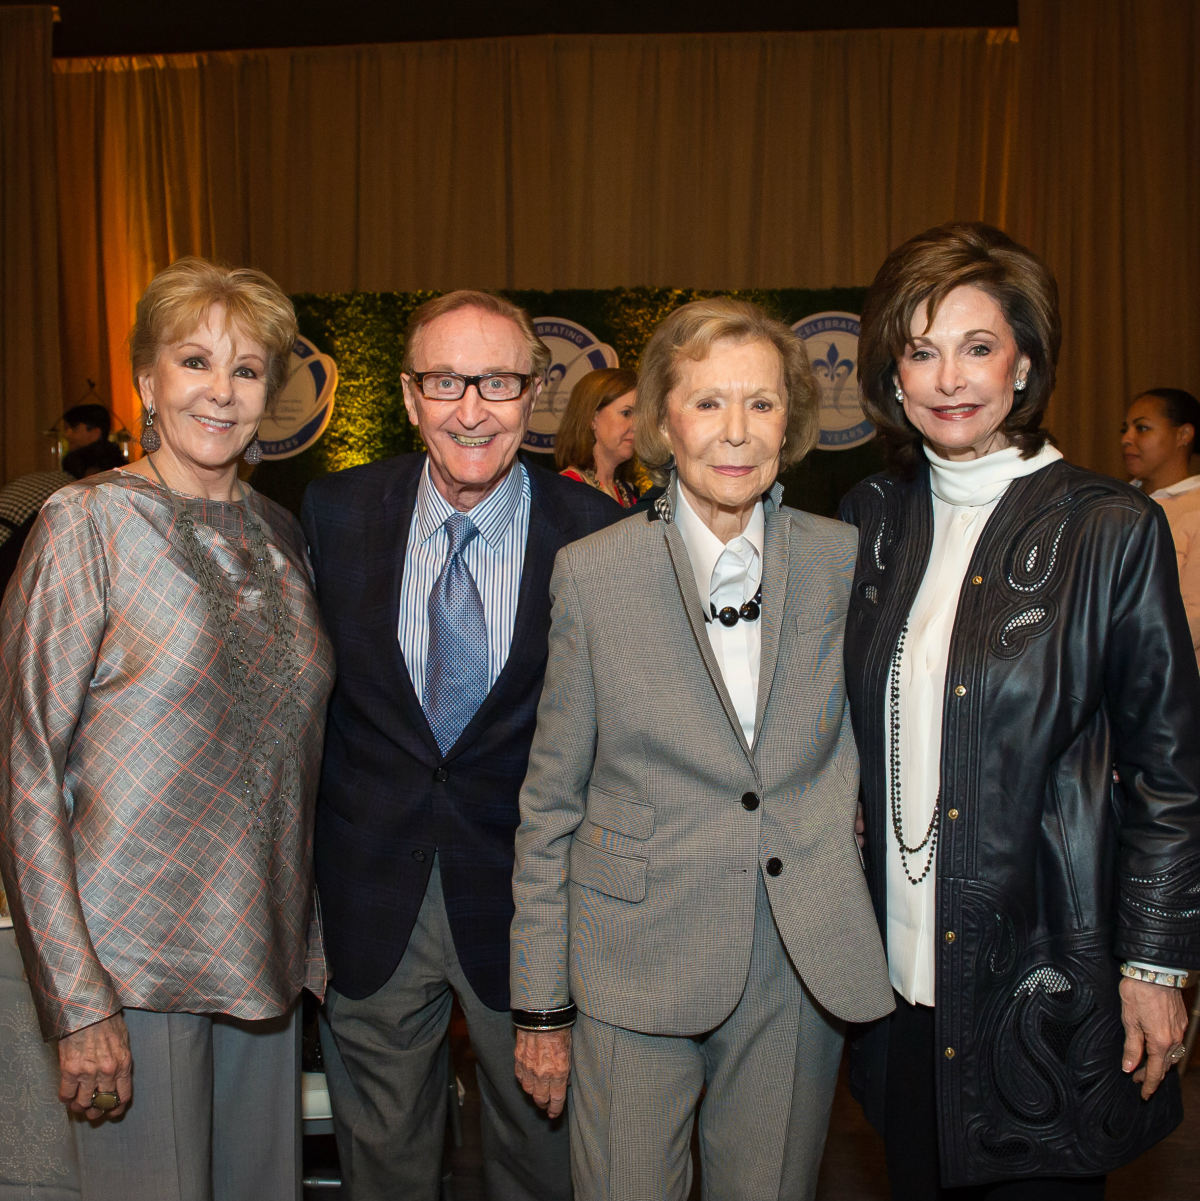 Annette Simmons, Dr. Ken Altshuler, Ruth Sharp Altshuler, Gene Jones